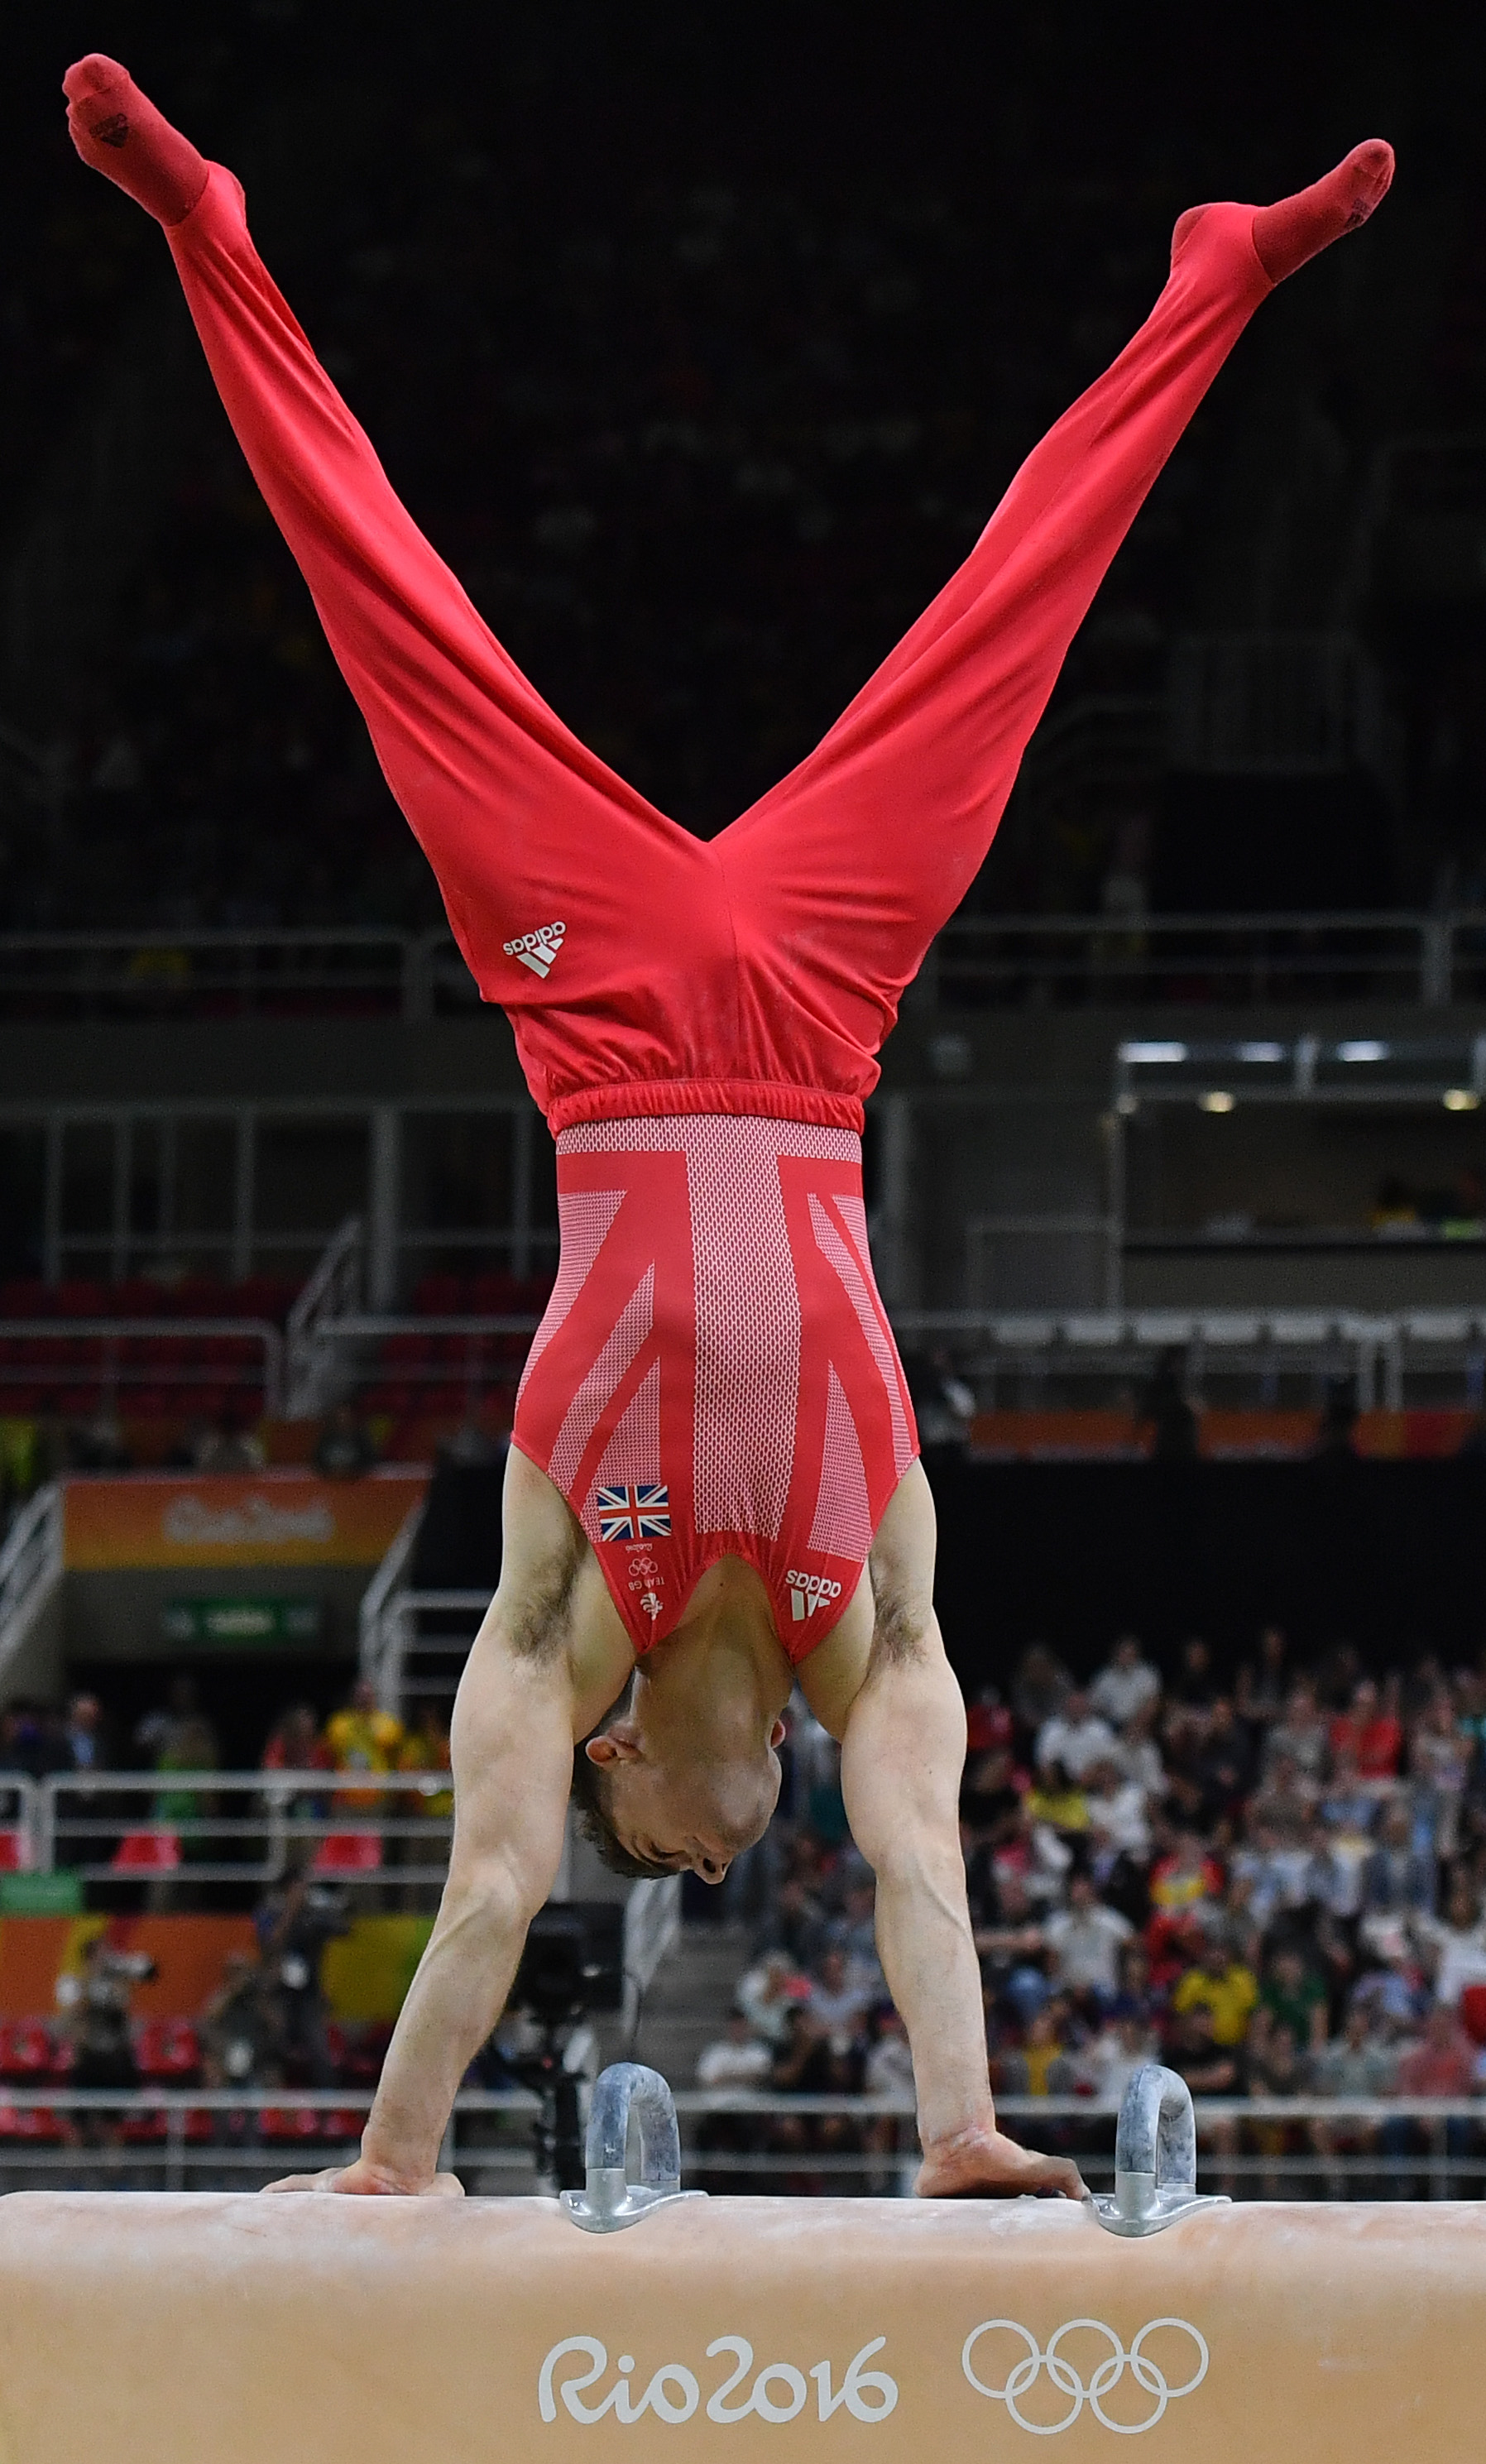 Britain's Max Whitlock competes in the pommel horse of the men's team final of the Artistic Gymnastics at the Olympic Arena during the Rio 2016 Olympic Games in Rio de Janeiro on August 8, 2016. / AFP PHOTO / Ben STANSALL